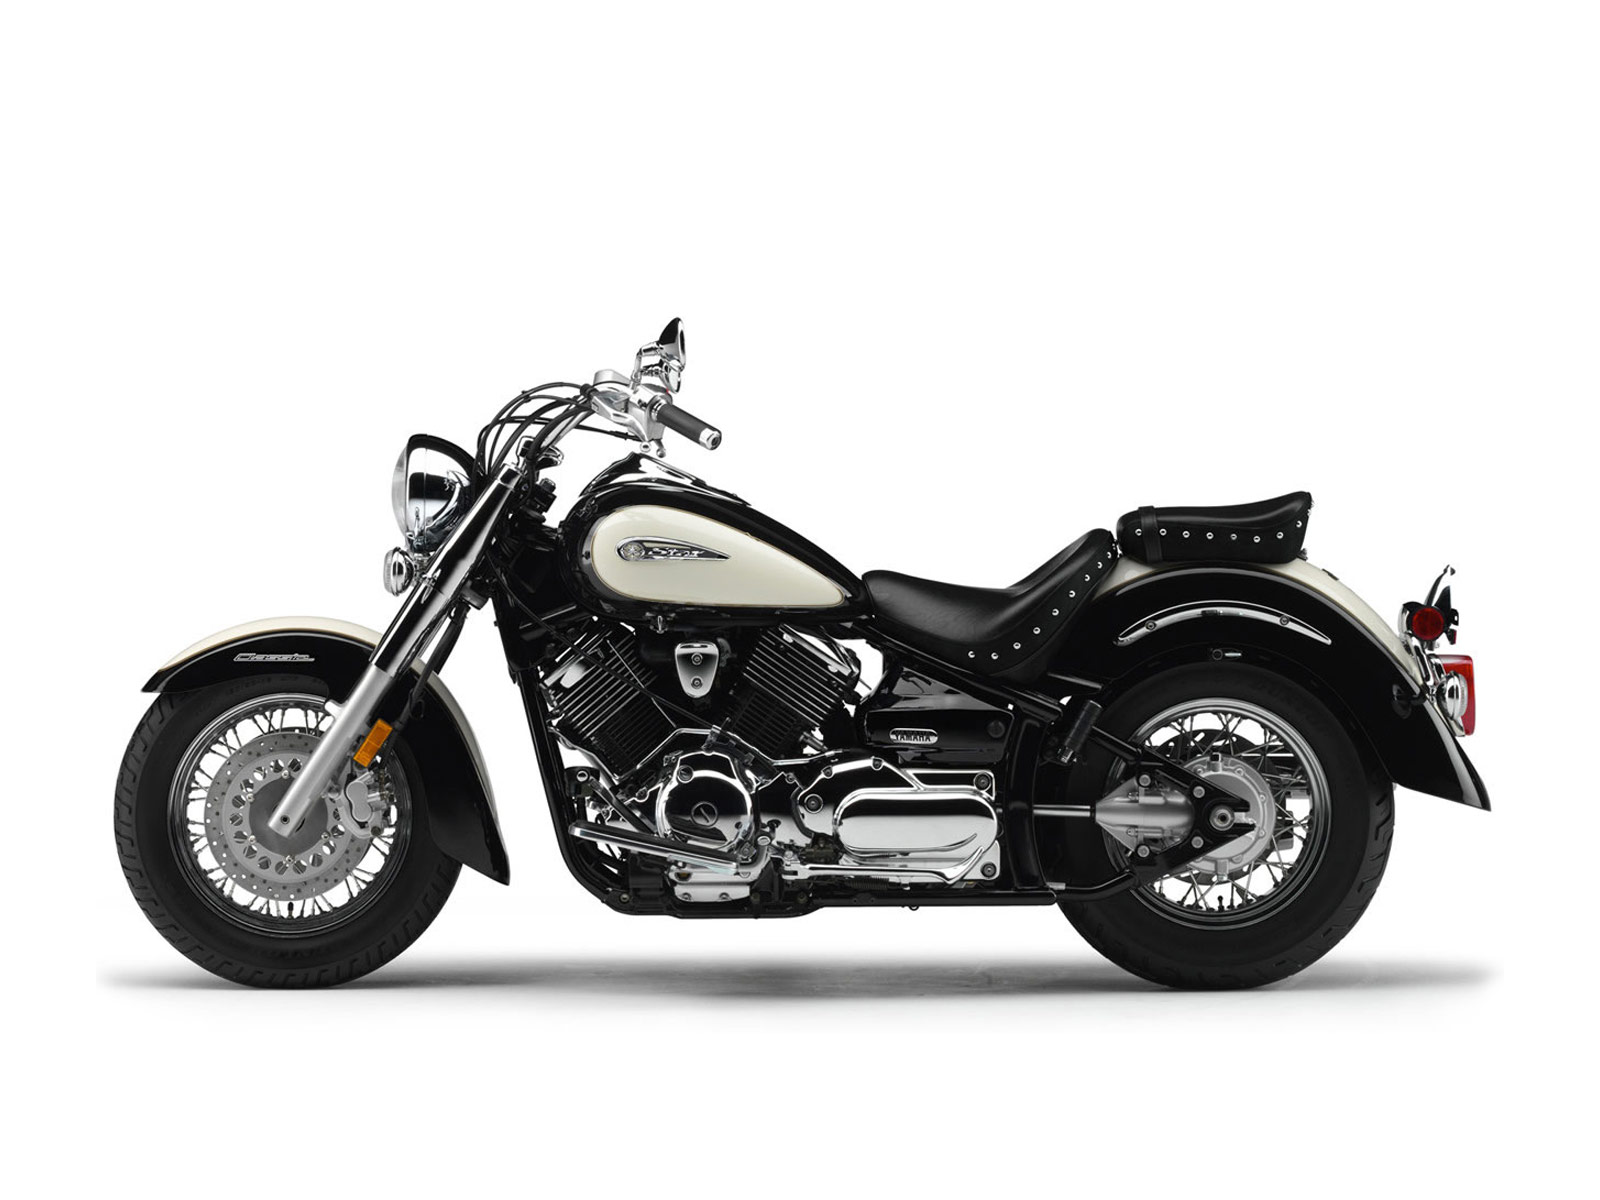 2004 Yamaha V-Star 1100 Classic Review - Total Motorcycle